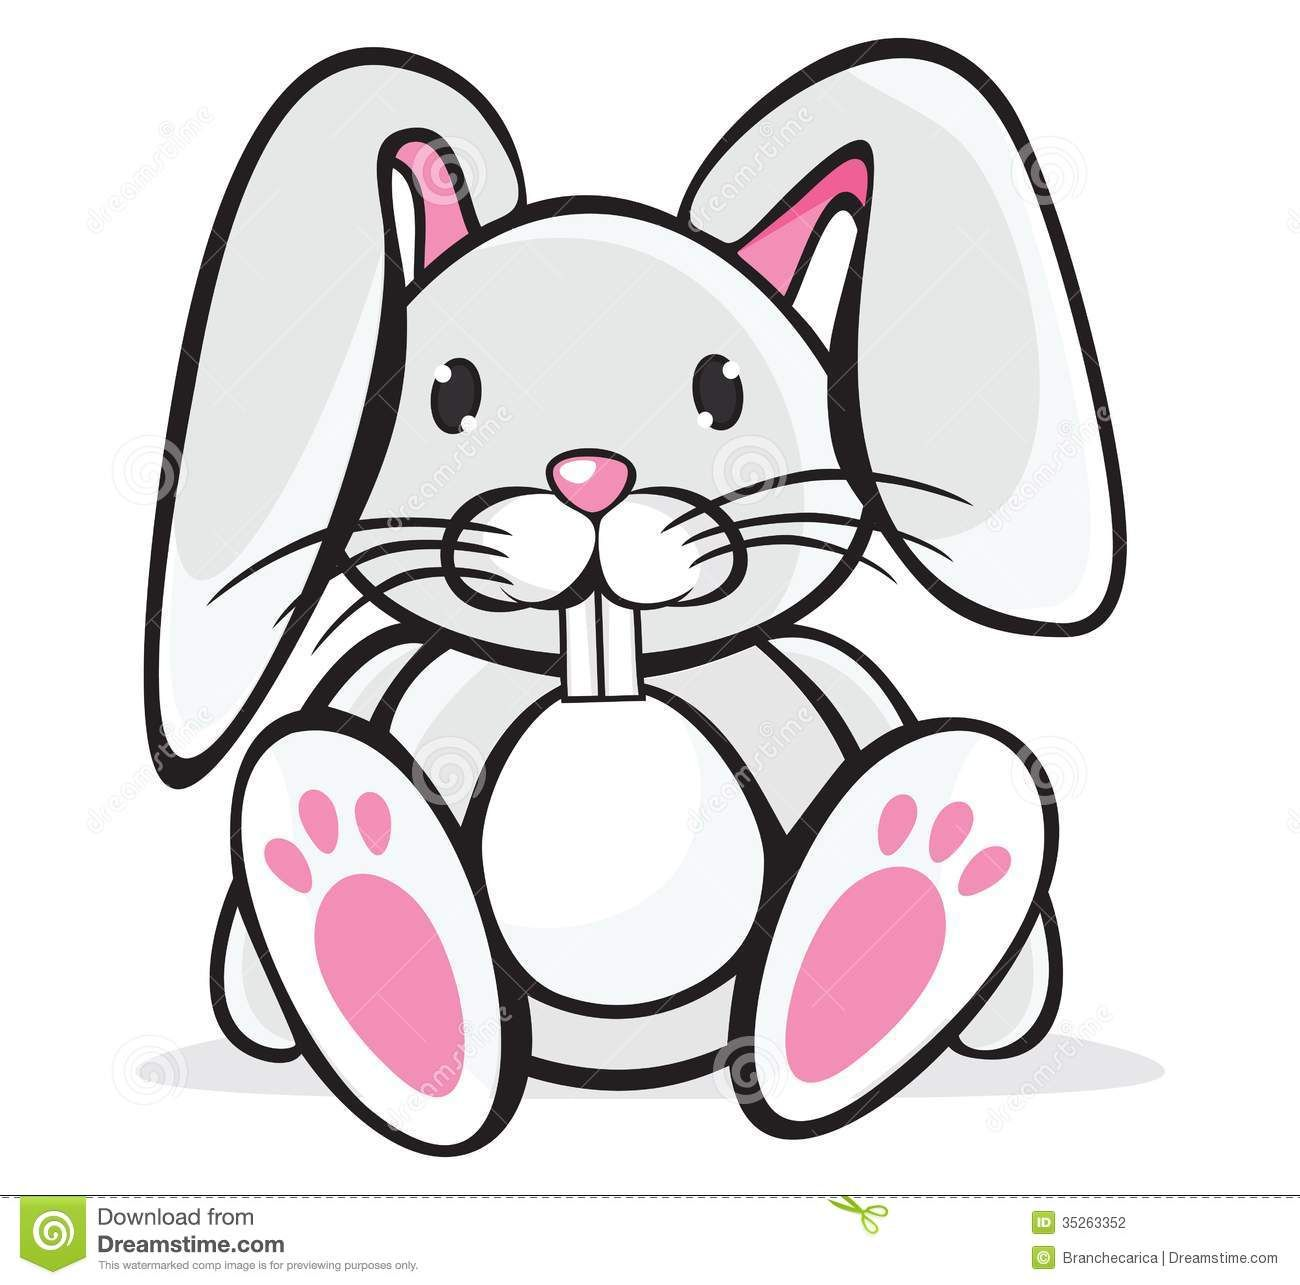 Go back images for cute rabbit clipart angel animal shells go back images for cute rabbit clipart voltagebd Image collections